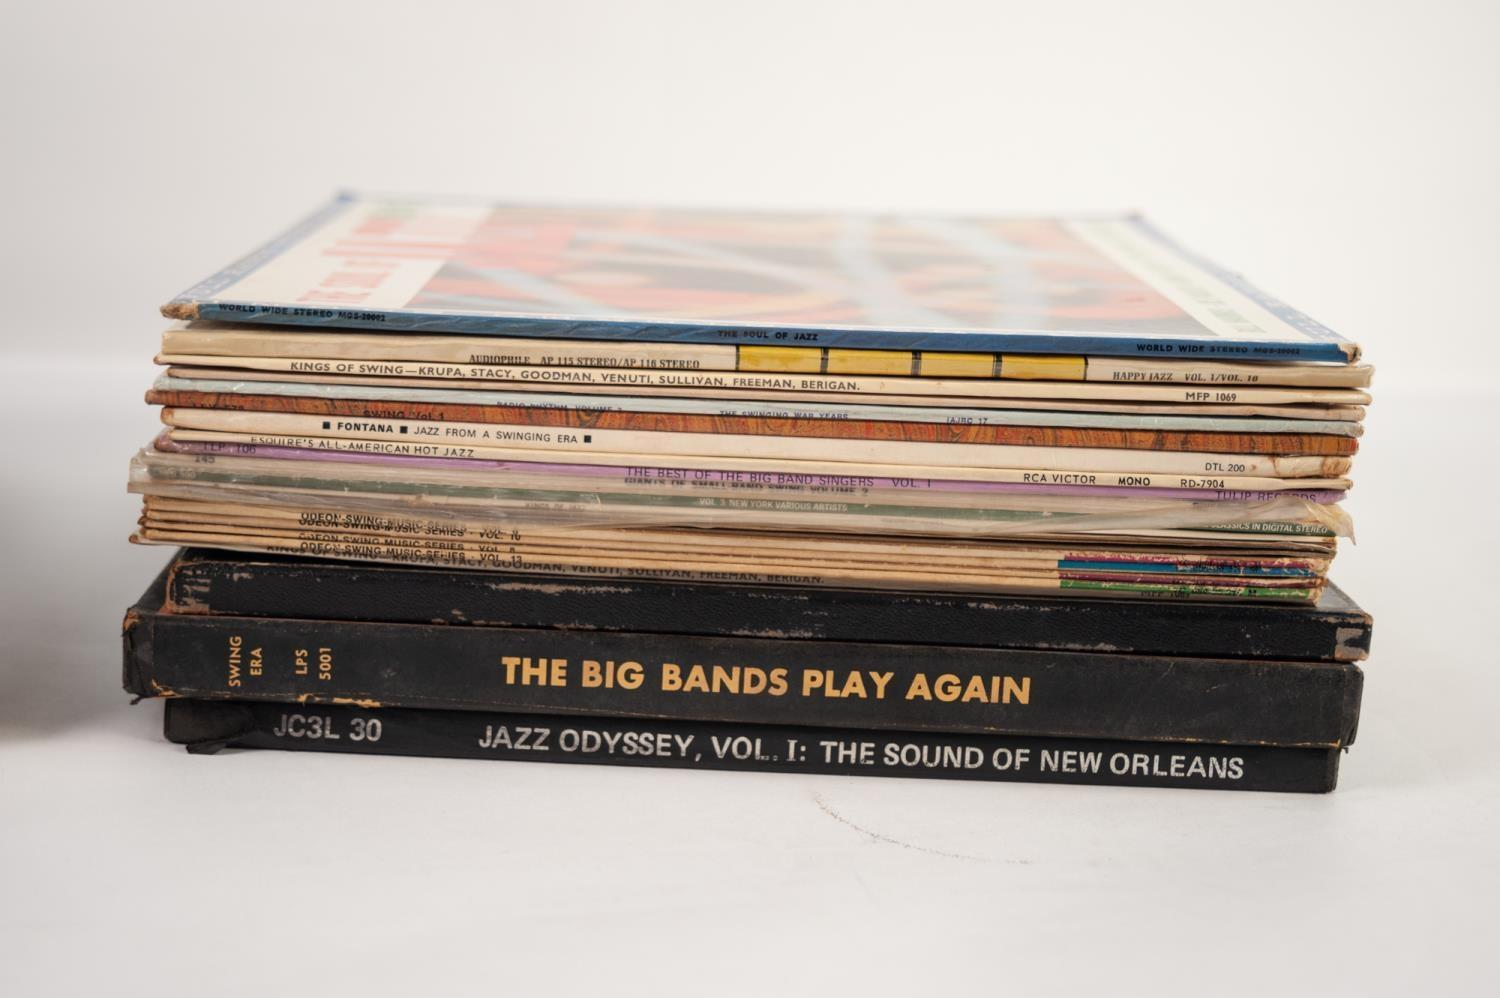 JAZZ, VINYL RECORDS- C IS COMPILATION- BEBOP INTO COOL, V Disc Jazz Session Series Dan Records (VC - Image 3 of 3